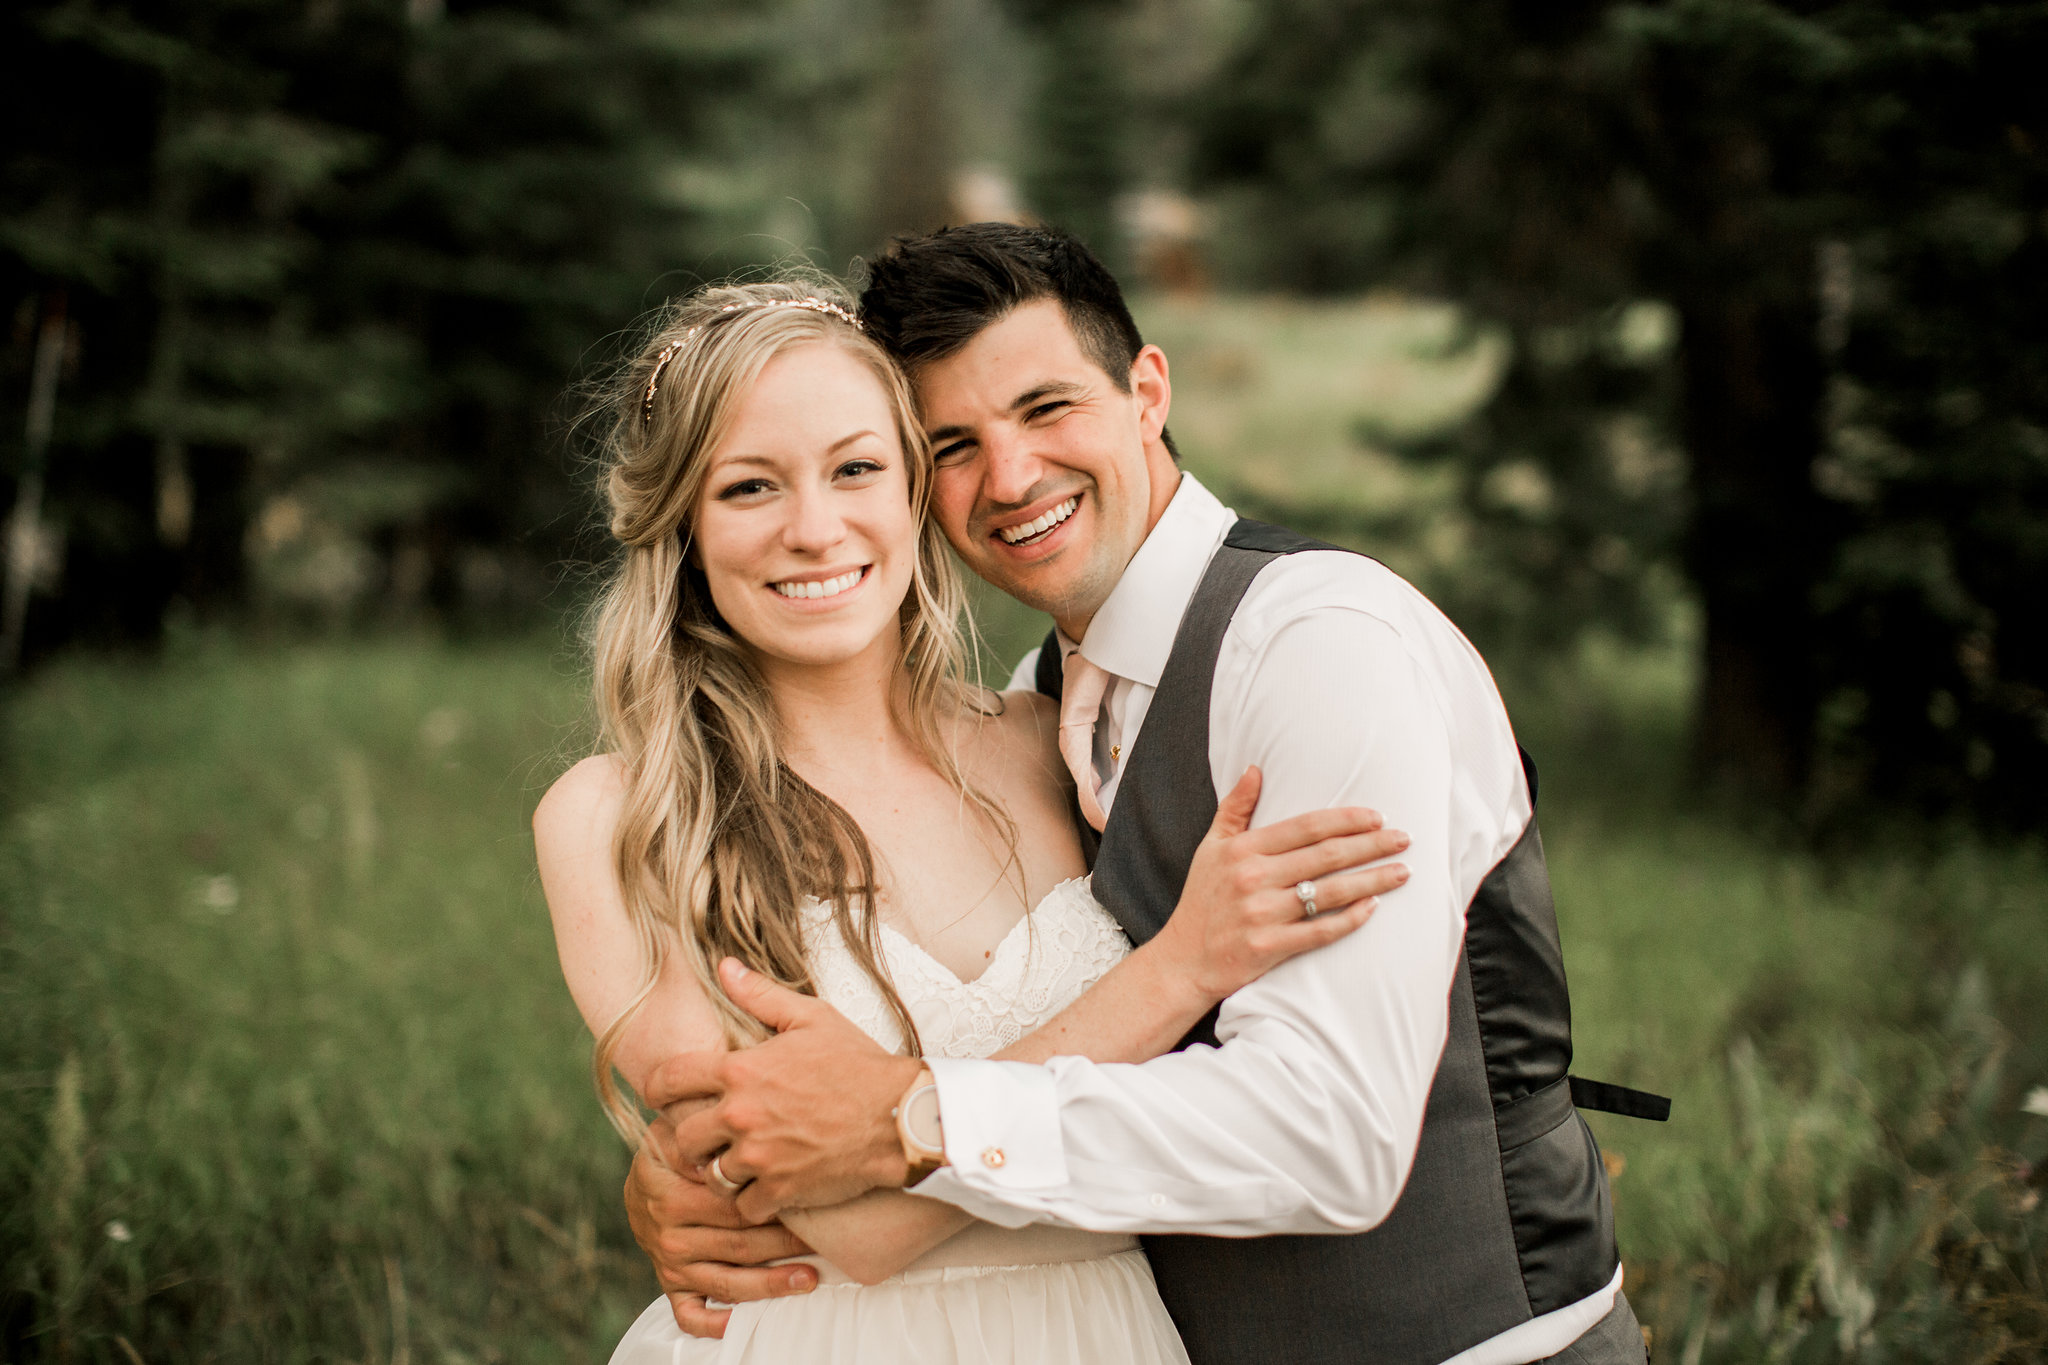 Ira and Lucy Wedding Planner, Jesse Hart Photography, Tamarack Wedding